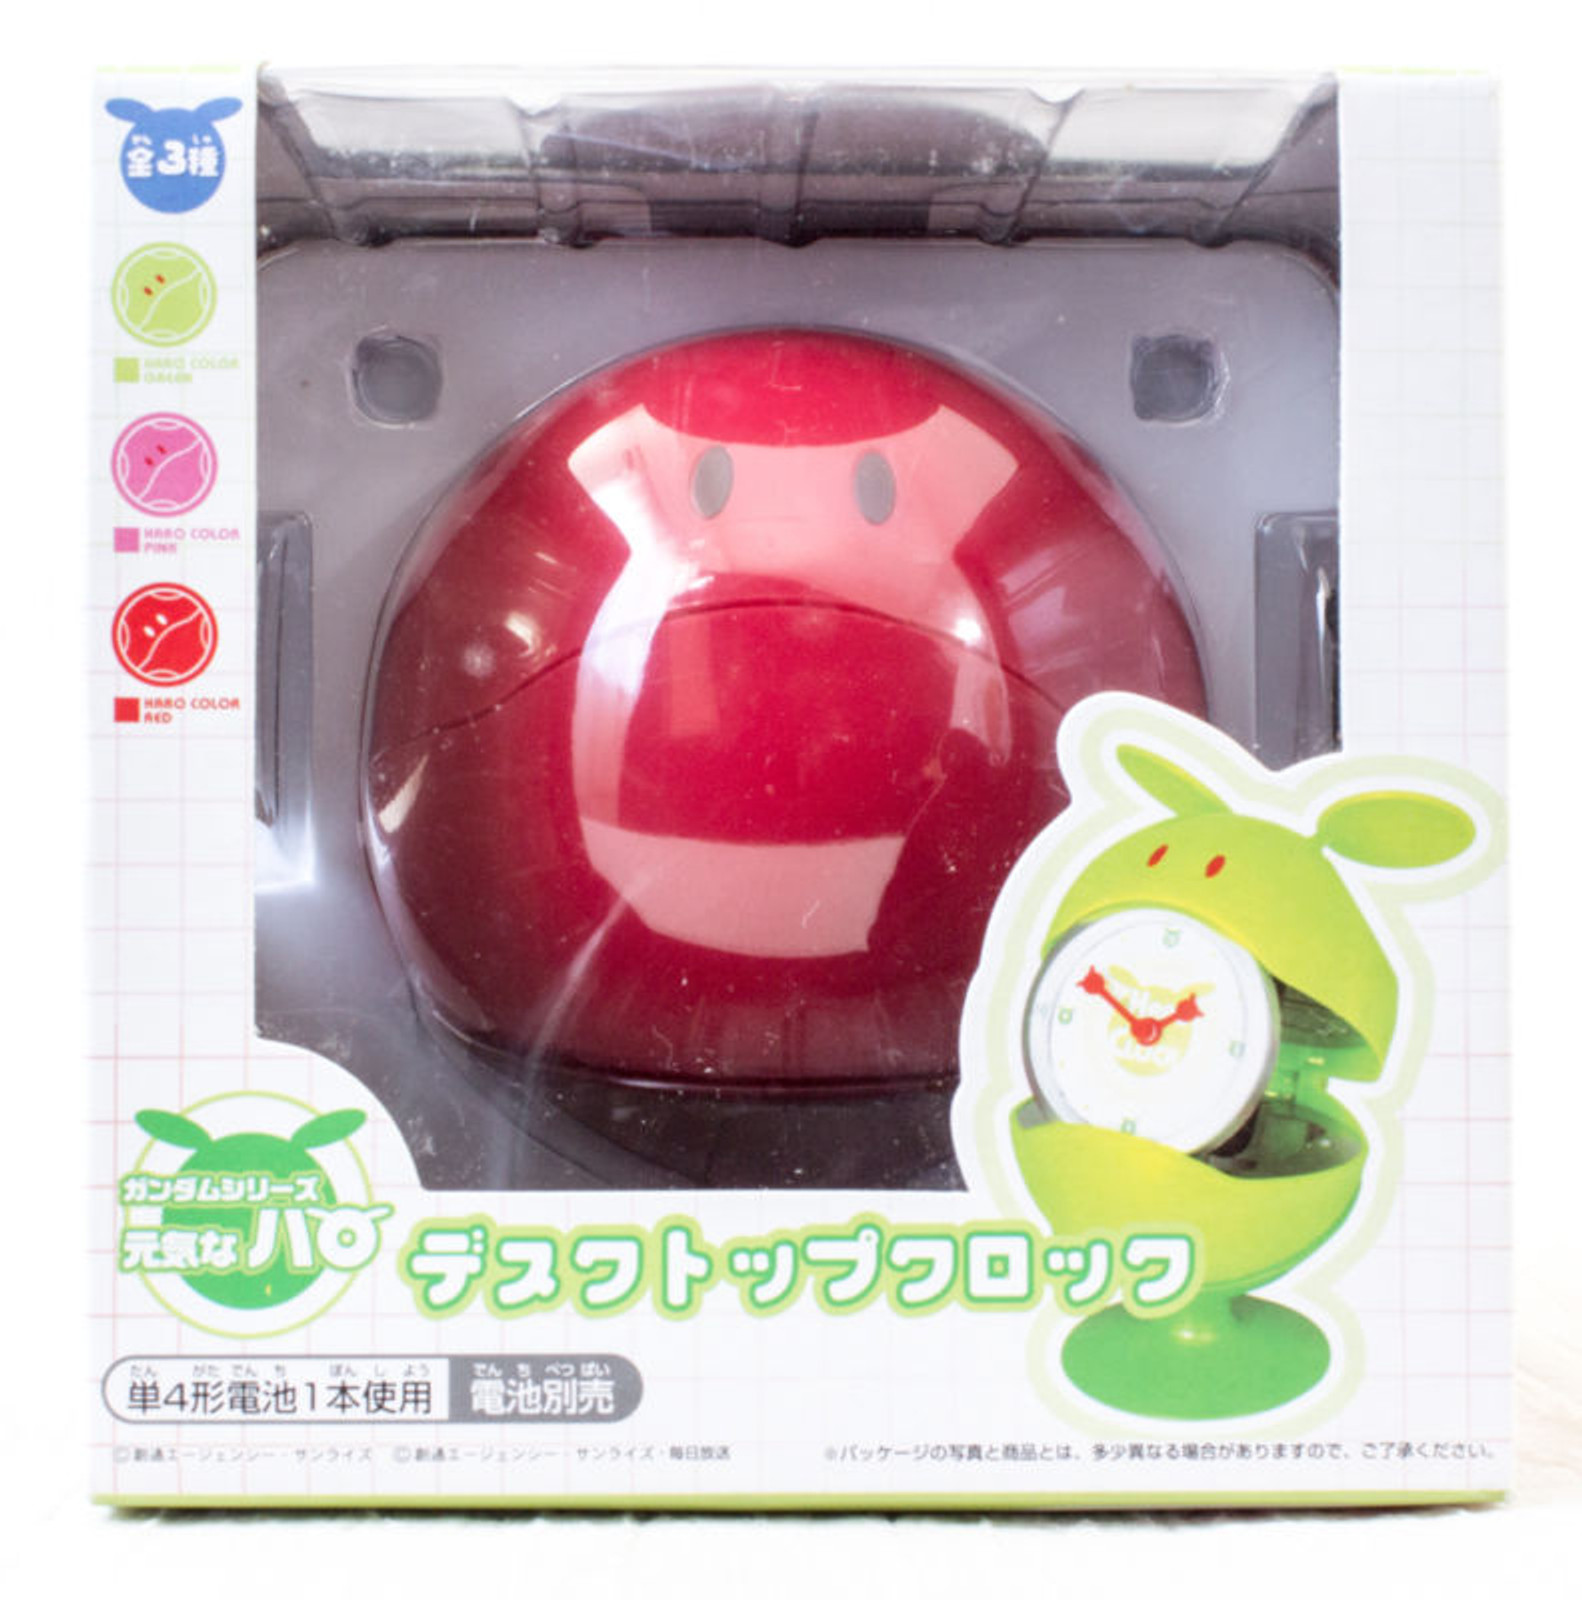 Gundam Mascot Robot Haro Figure Desktop Clock Red Ver. JAPAN ANIME MANGA